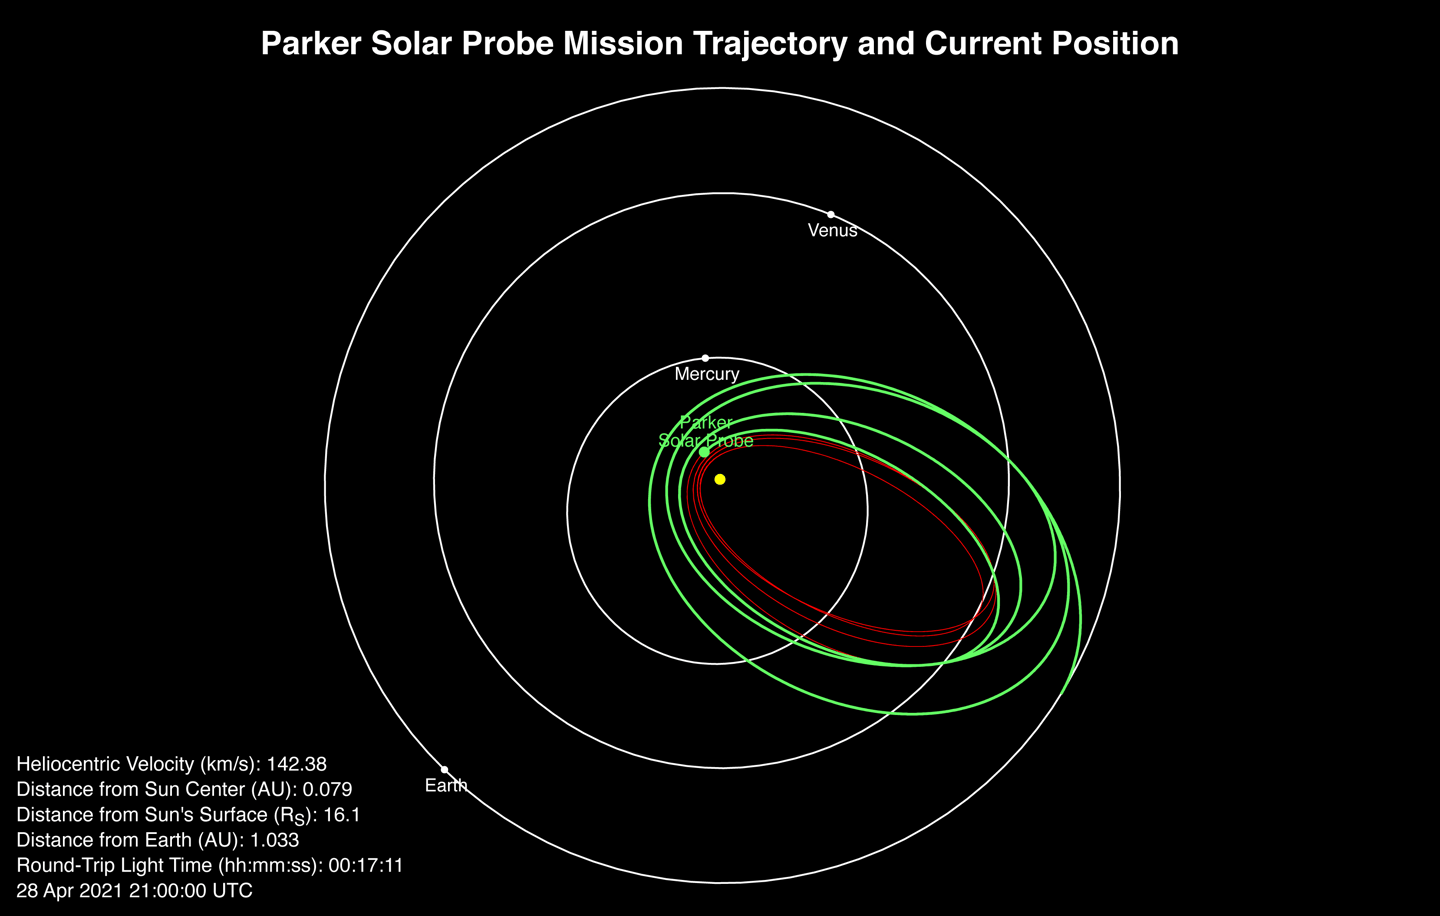 Image depicts the current position and trajectory of the Parker Solar Probe